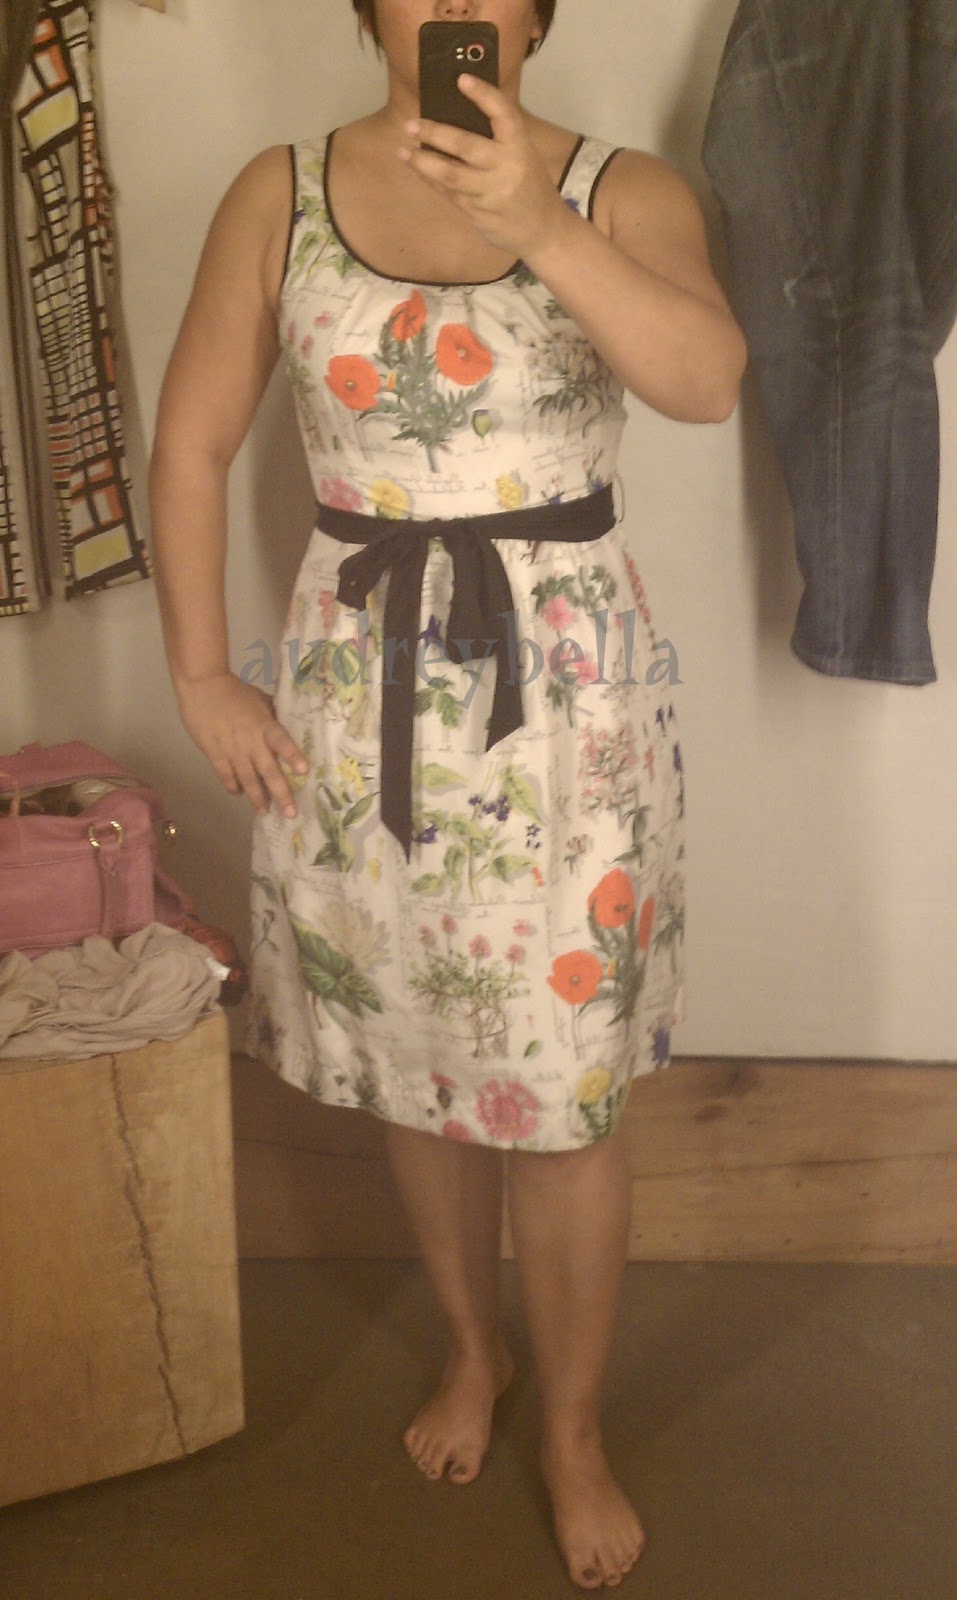 4eaf36a6aa21 Tuilieries Dress – Size 6 – The was a perfect fit at the chest. If I had a  summer wedding shower this would be the dress to wear.